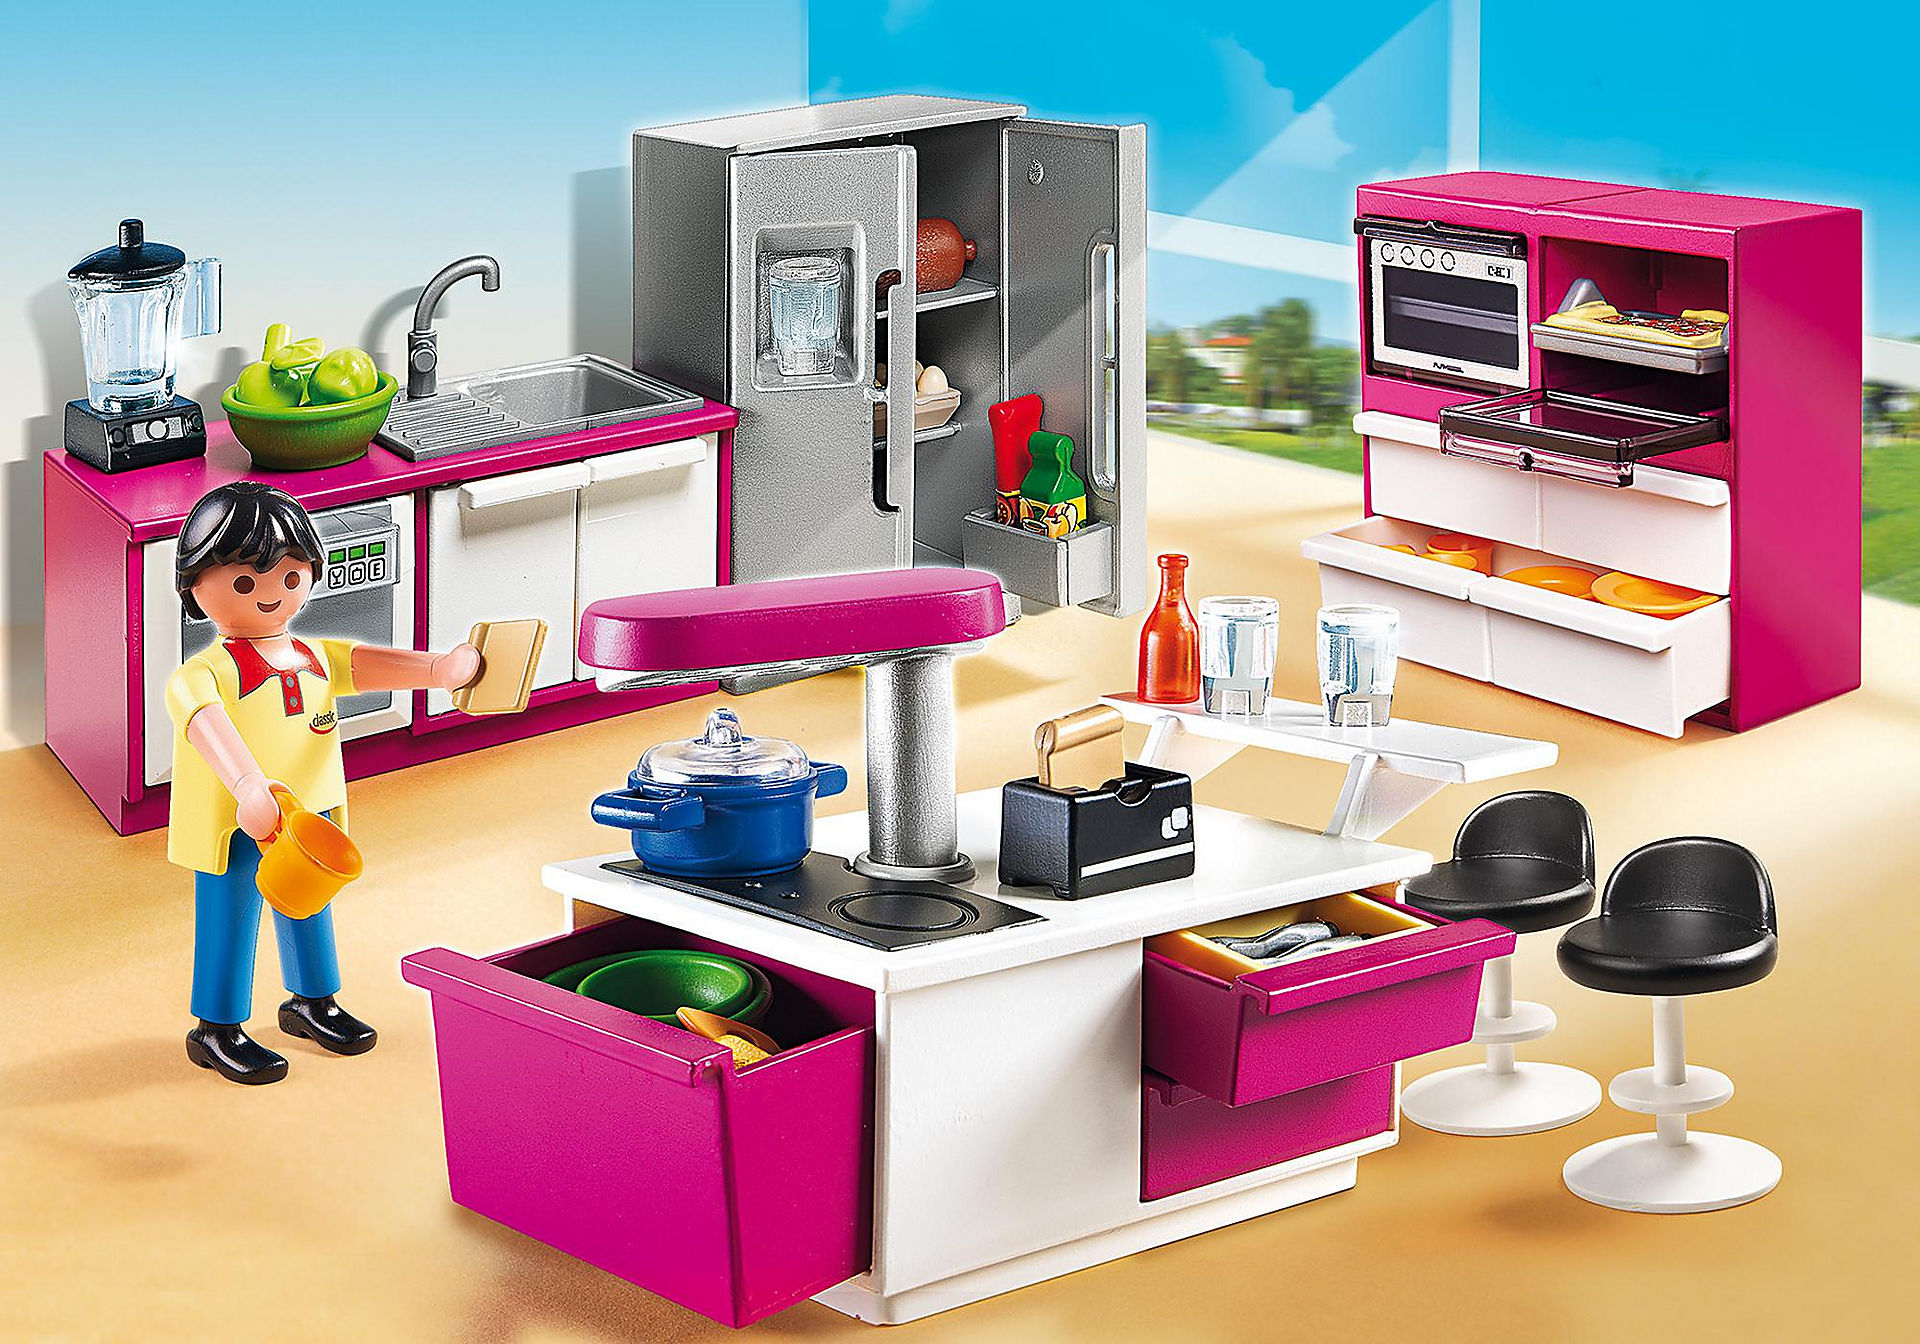 5582 Modern Designer Kitchen zoom image1